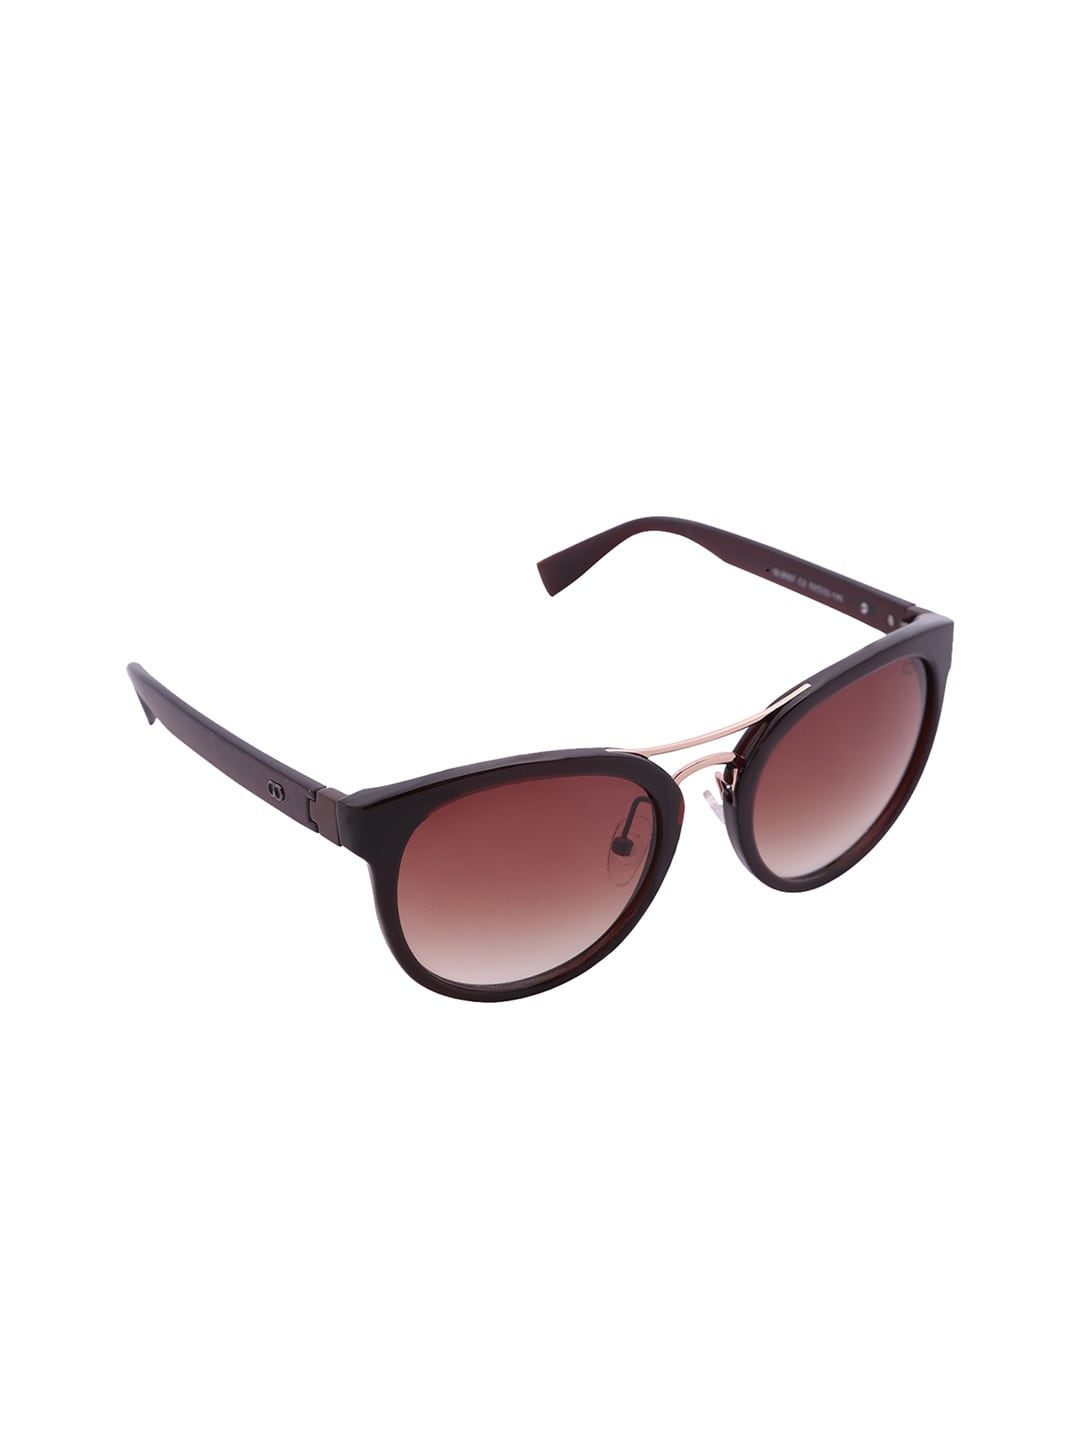 d9d91594a4 Oval Sunglasses - Buy Oval Sunglasses online in India